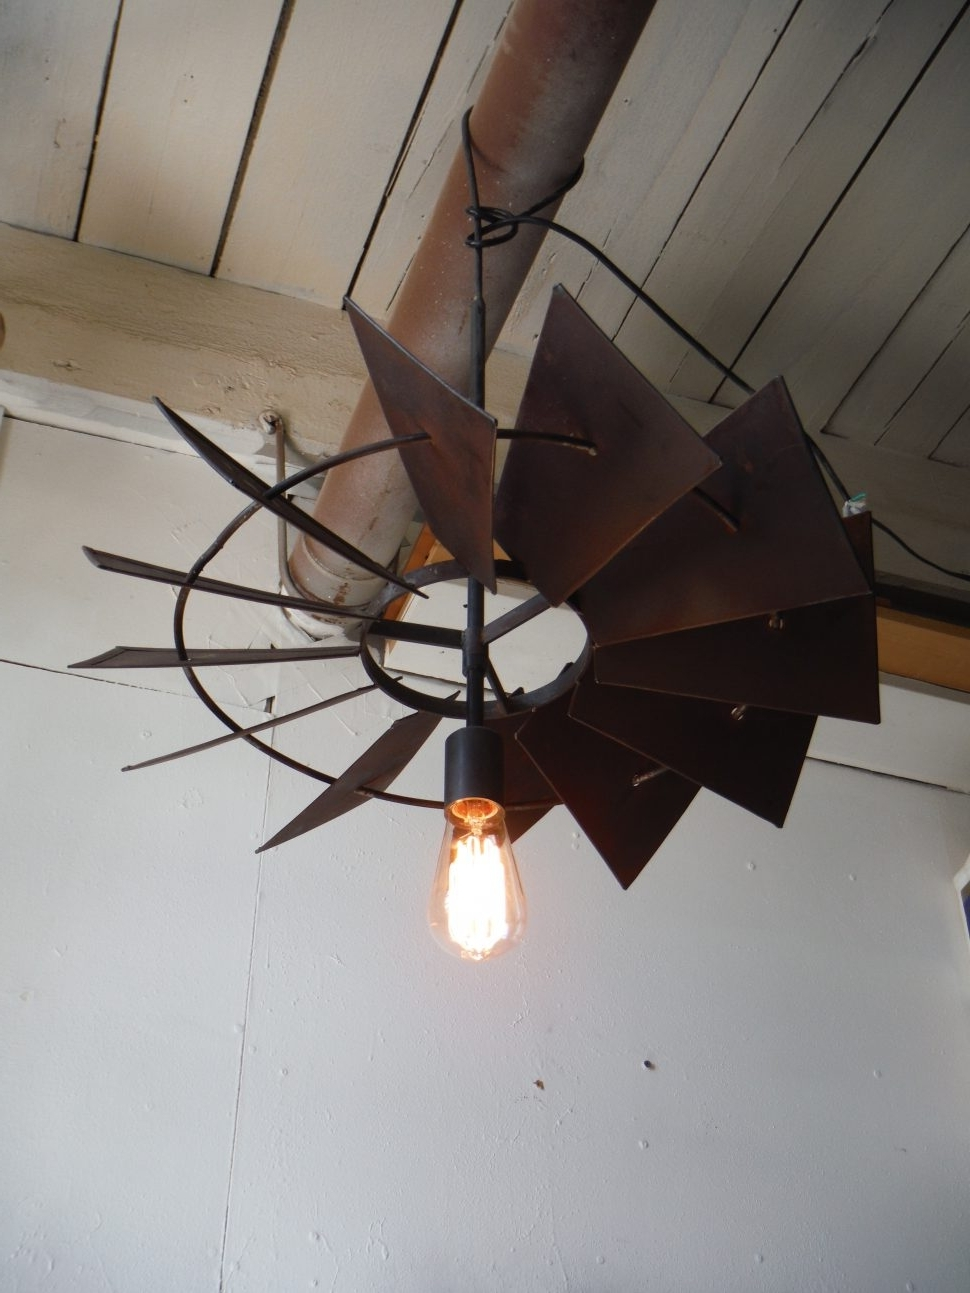 Outdoor Windmill Ceiling Fans With Light Regarding 2019 Windmill Ceiling Fan With Light Kit Great Outdoor Ceiling Fan With (View 14 of 20)